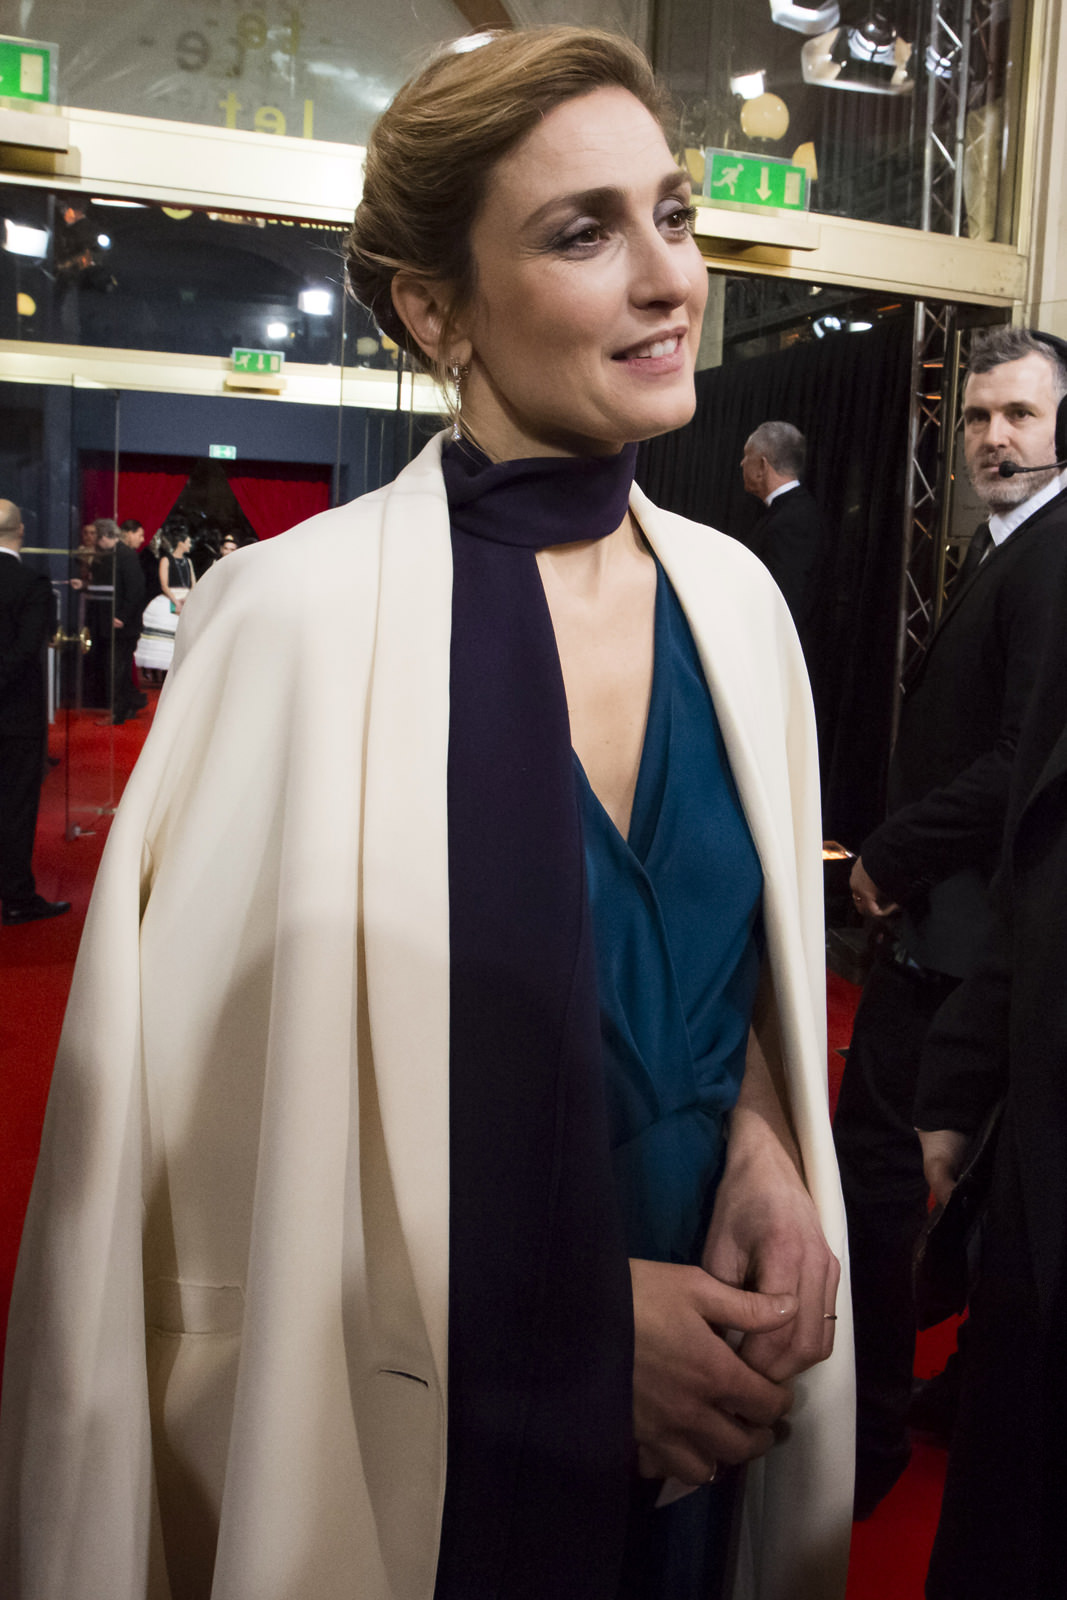 Julie Gayet Photo Gallery